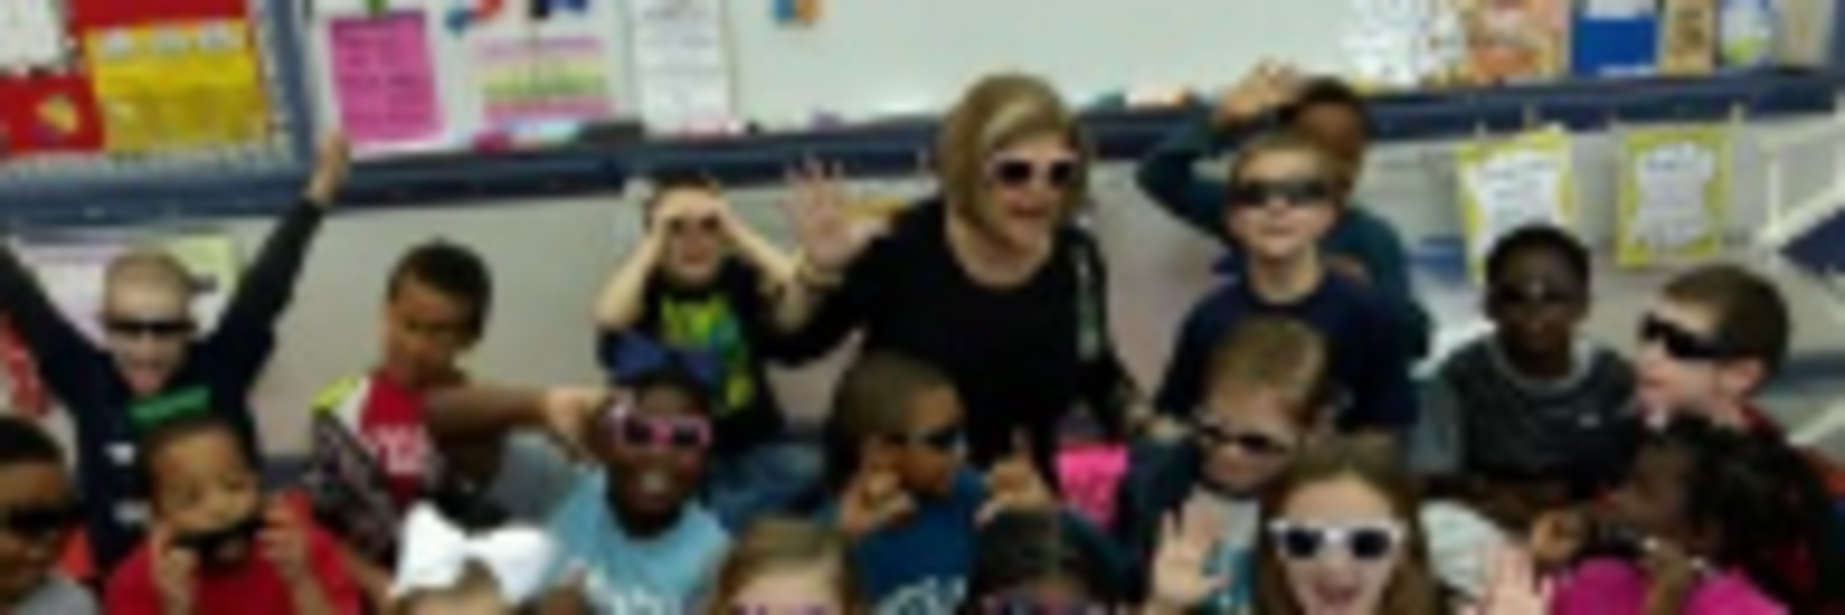 Mrs. Nolen's class in their sunglasses